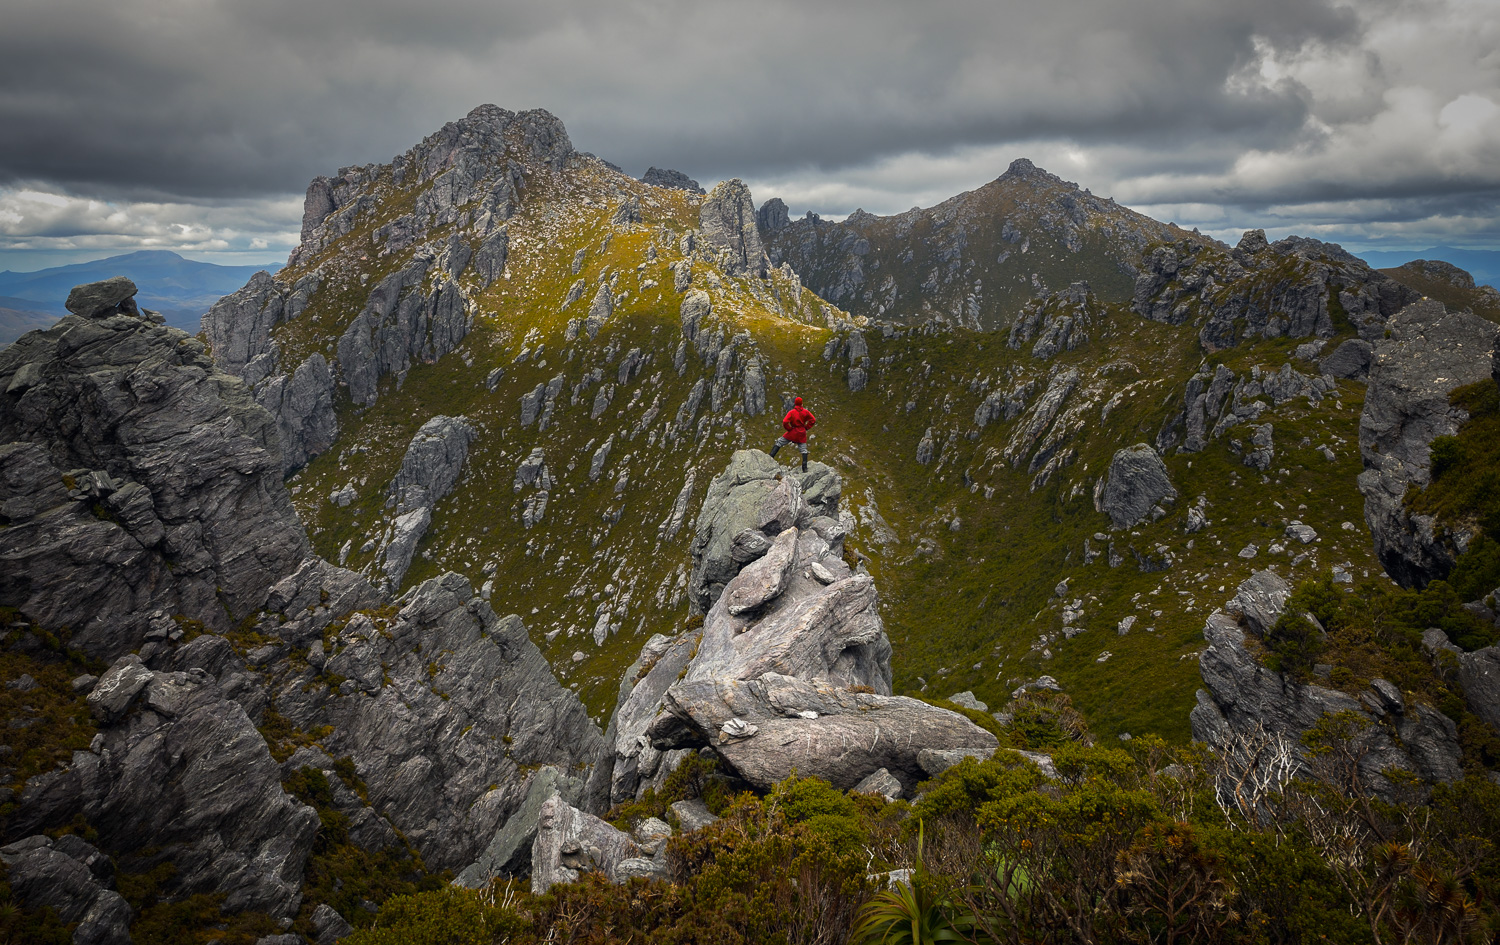 Tasmanian Photography - Little Red Hiking Hood - WILKOGRAPHY.jpg